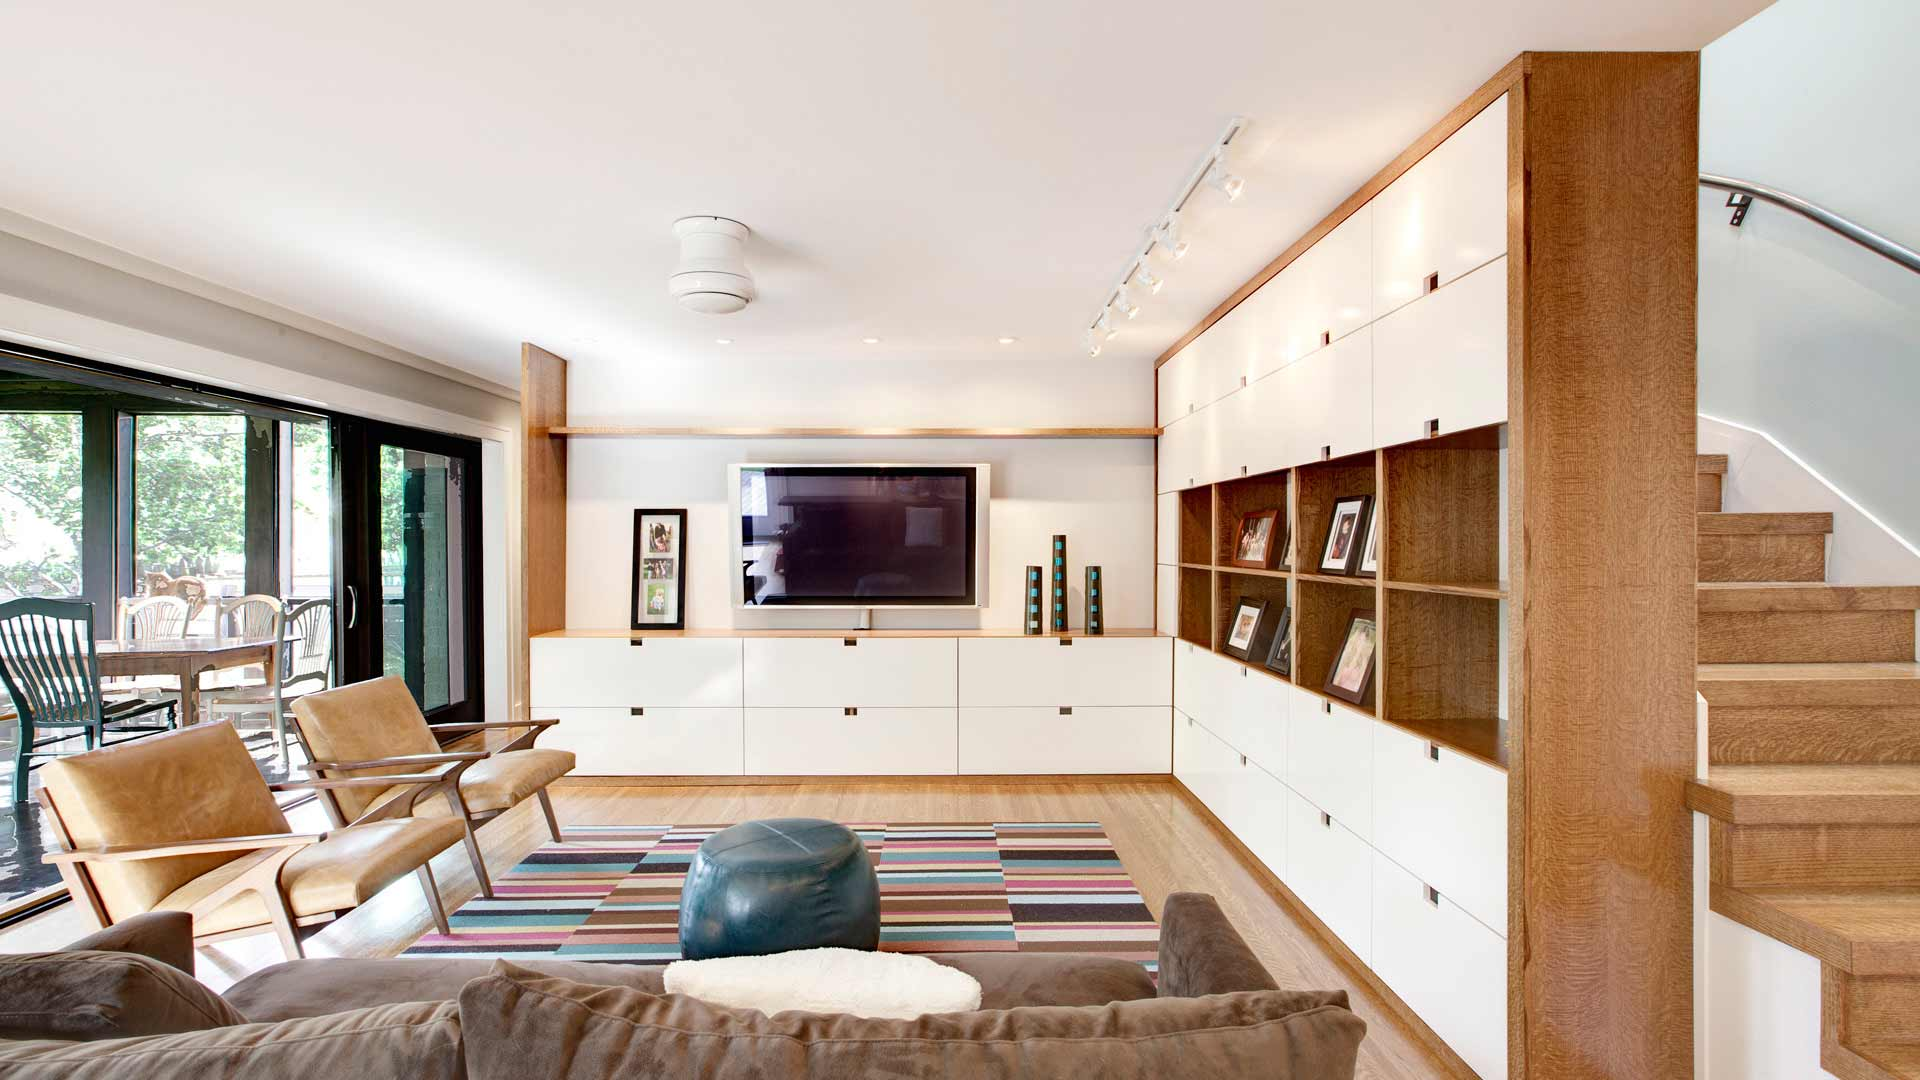 Butler Tarkington Modern Tudor - Scandinavian Interior Media Center, HAUS Architecture, WERK Building Modern